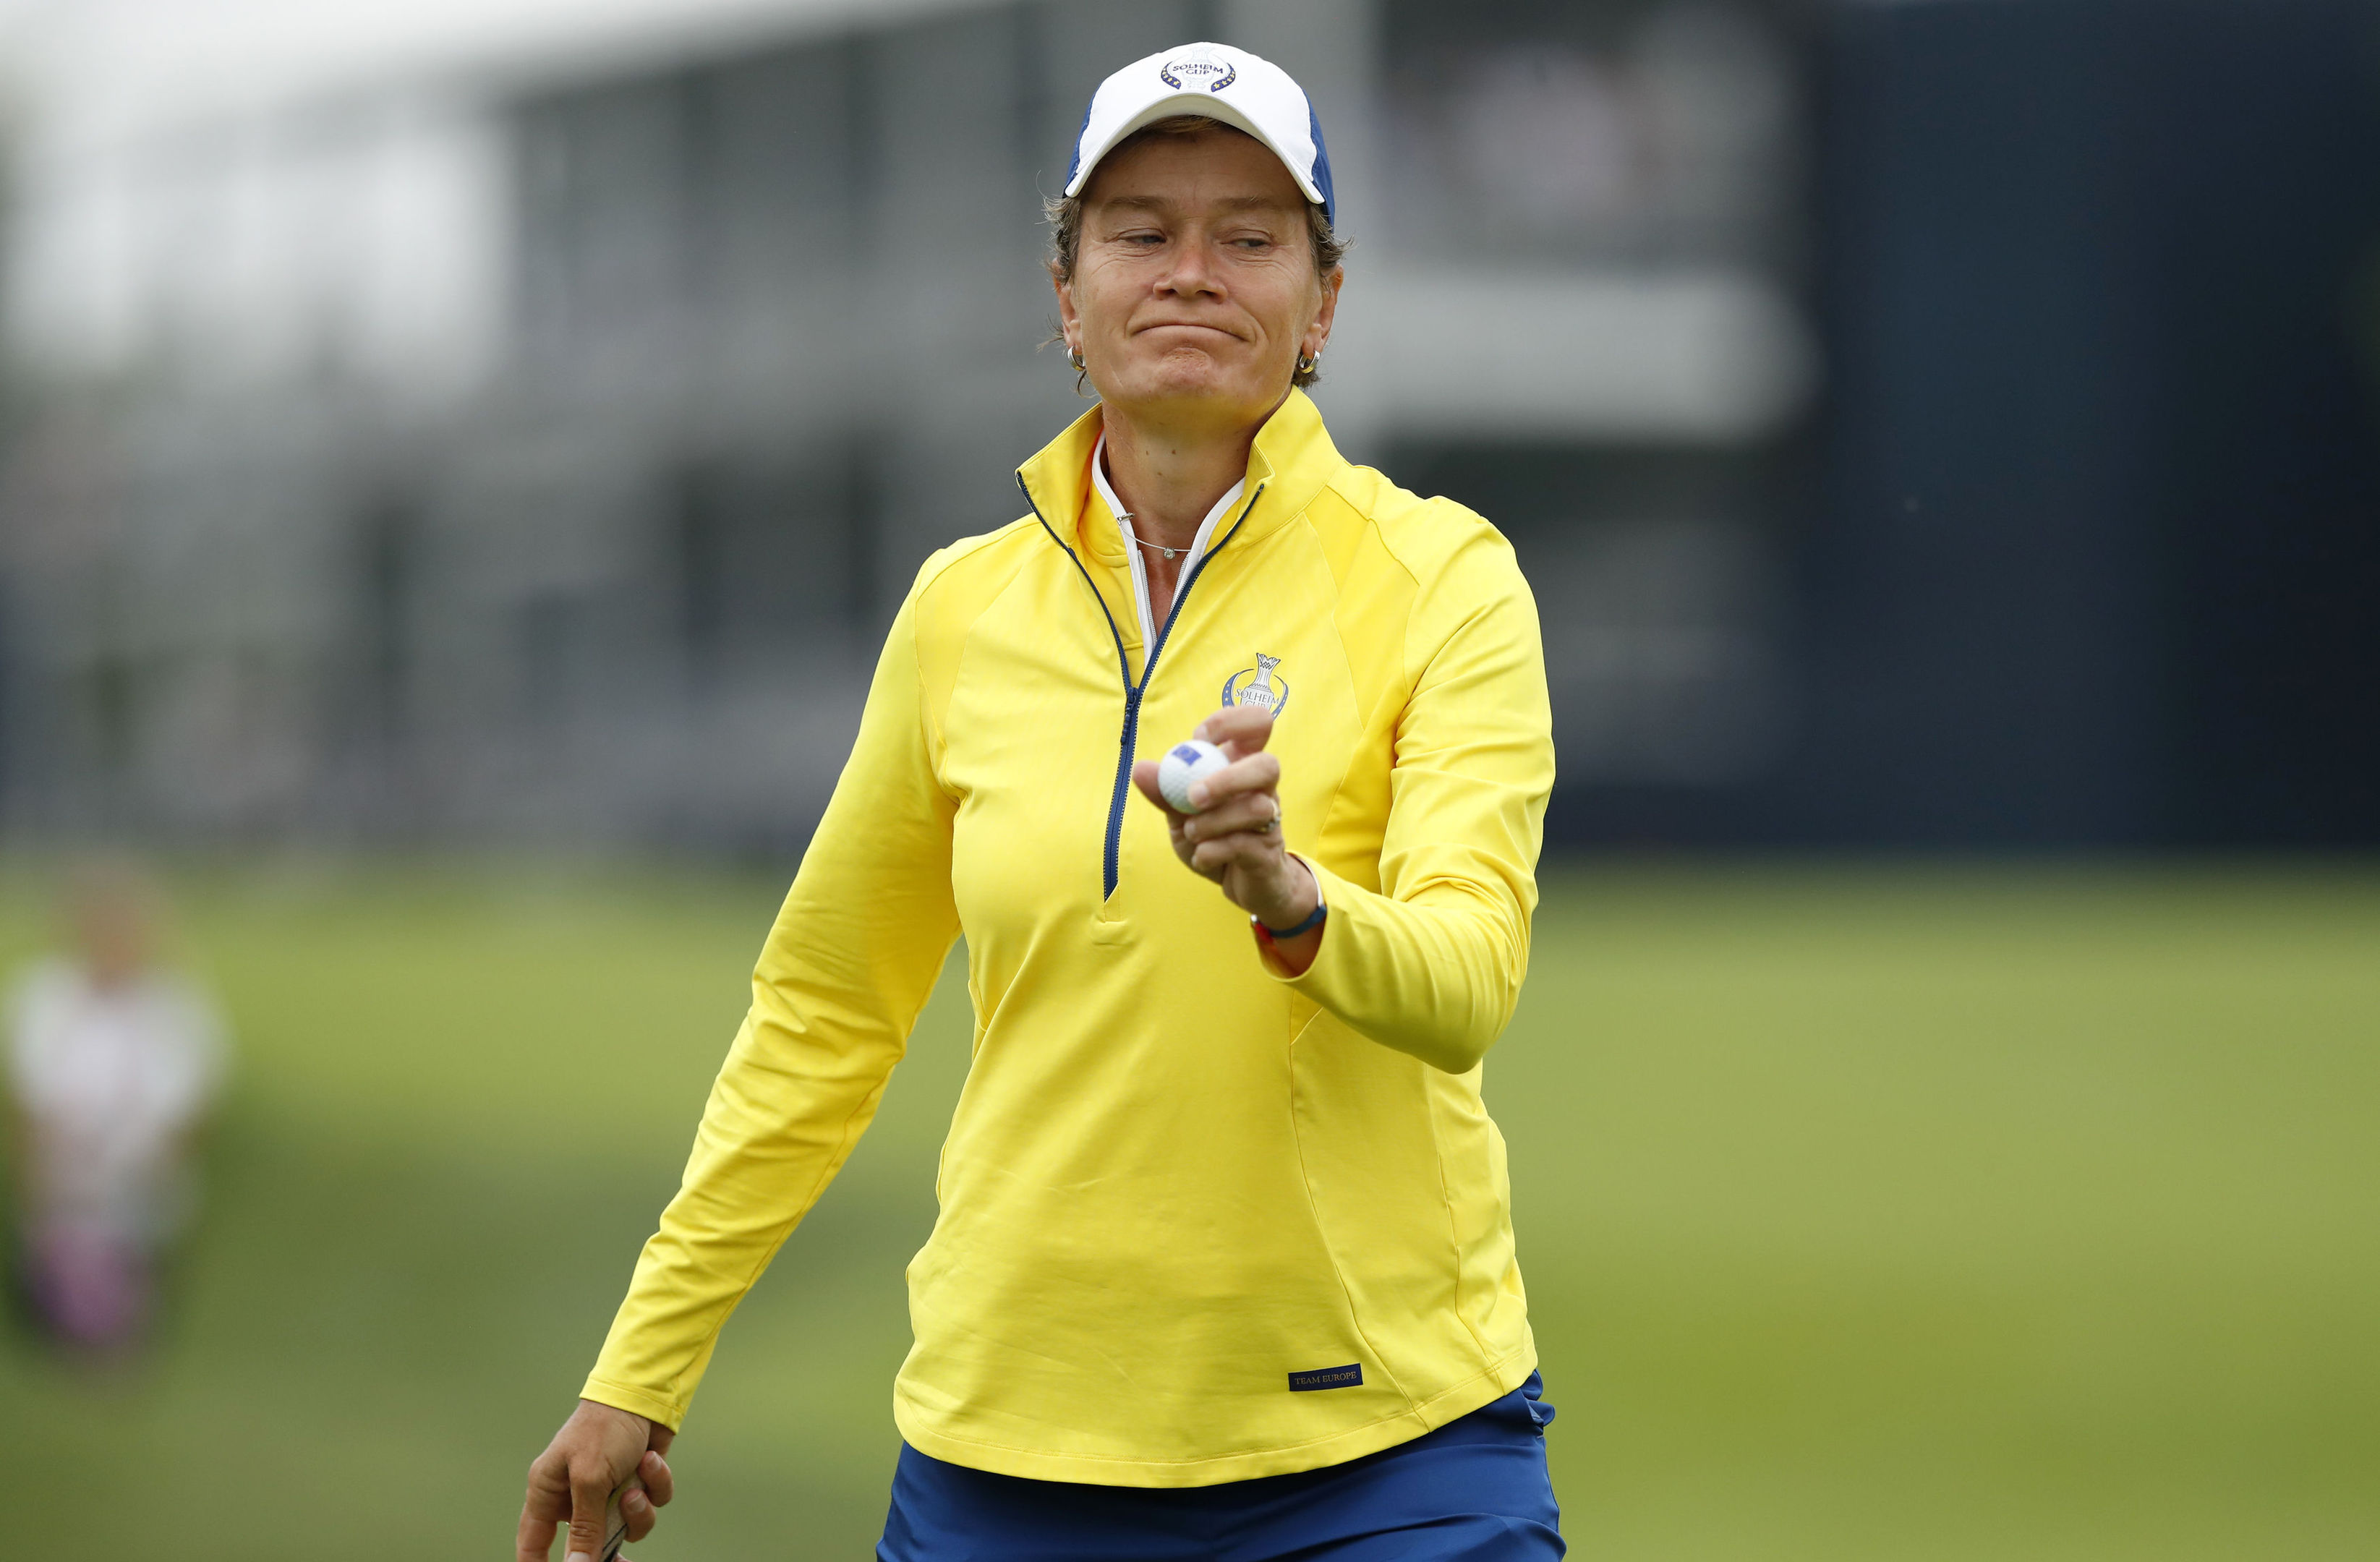 Catriona Matthew finished her Solheim Cup career with the best singles record in the history of the event.